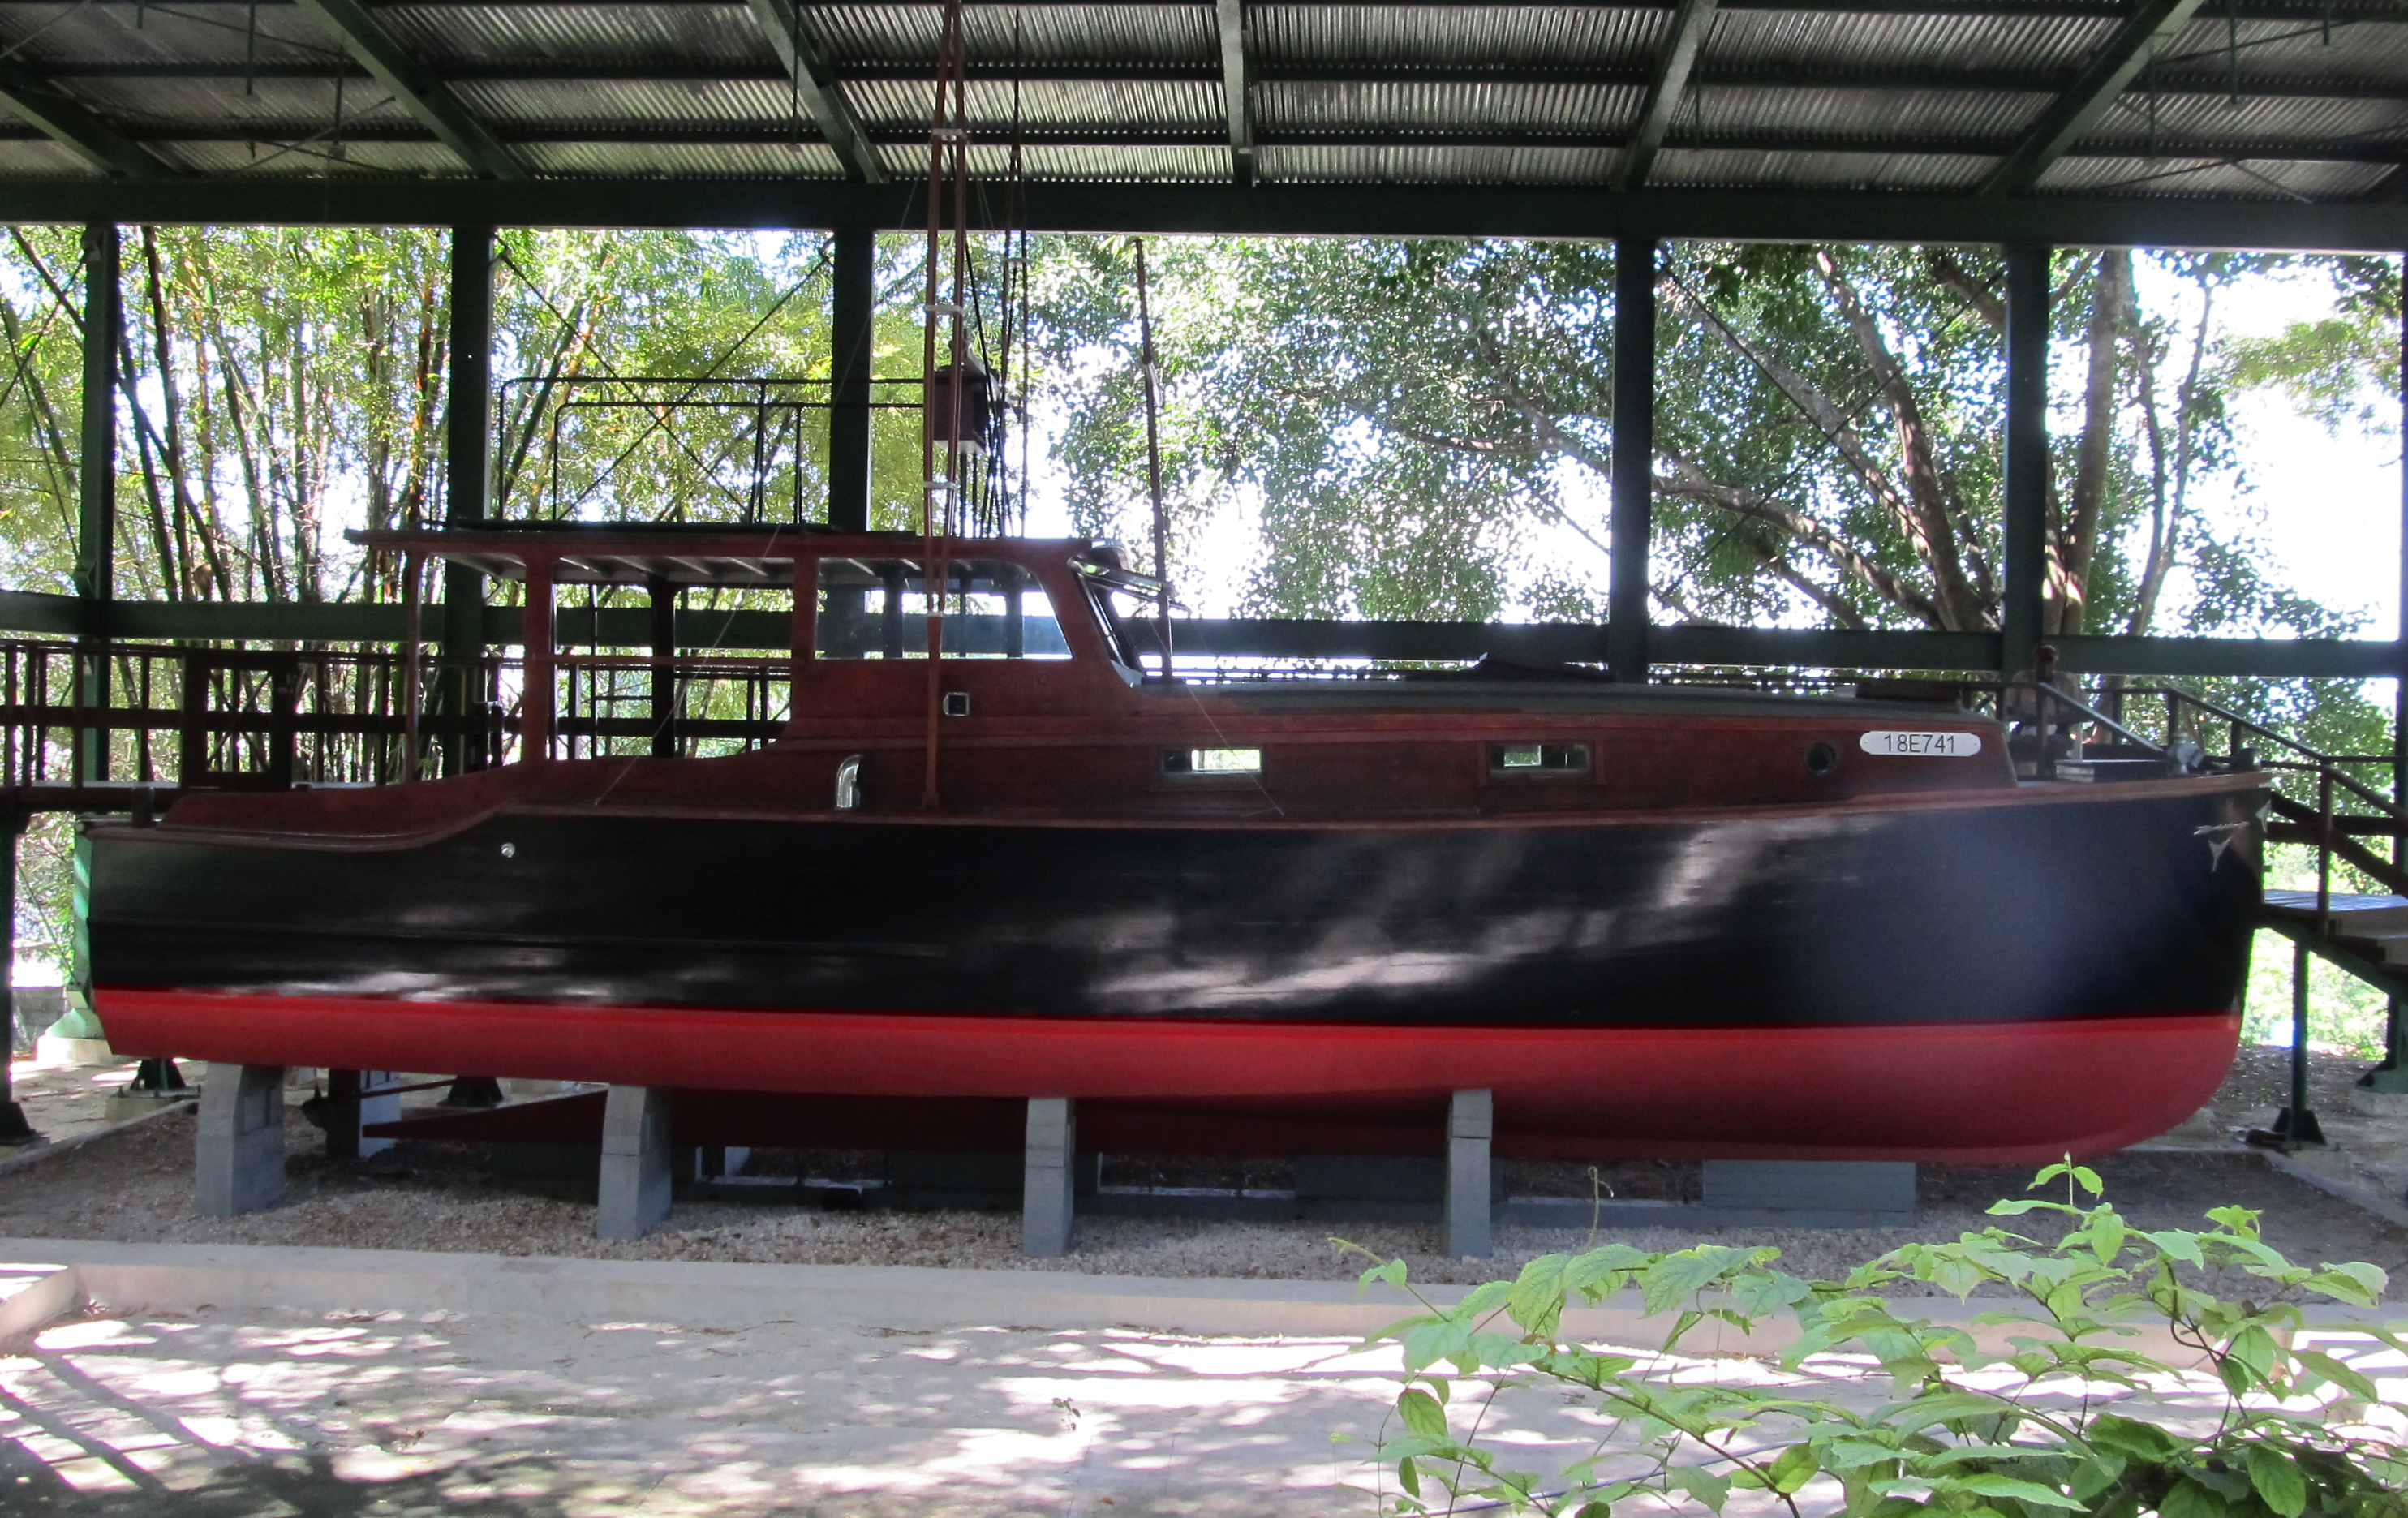 Hemingways Boat: Everything He Loved in Life, and Lost, 1934 - 1961